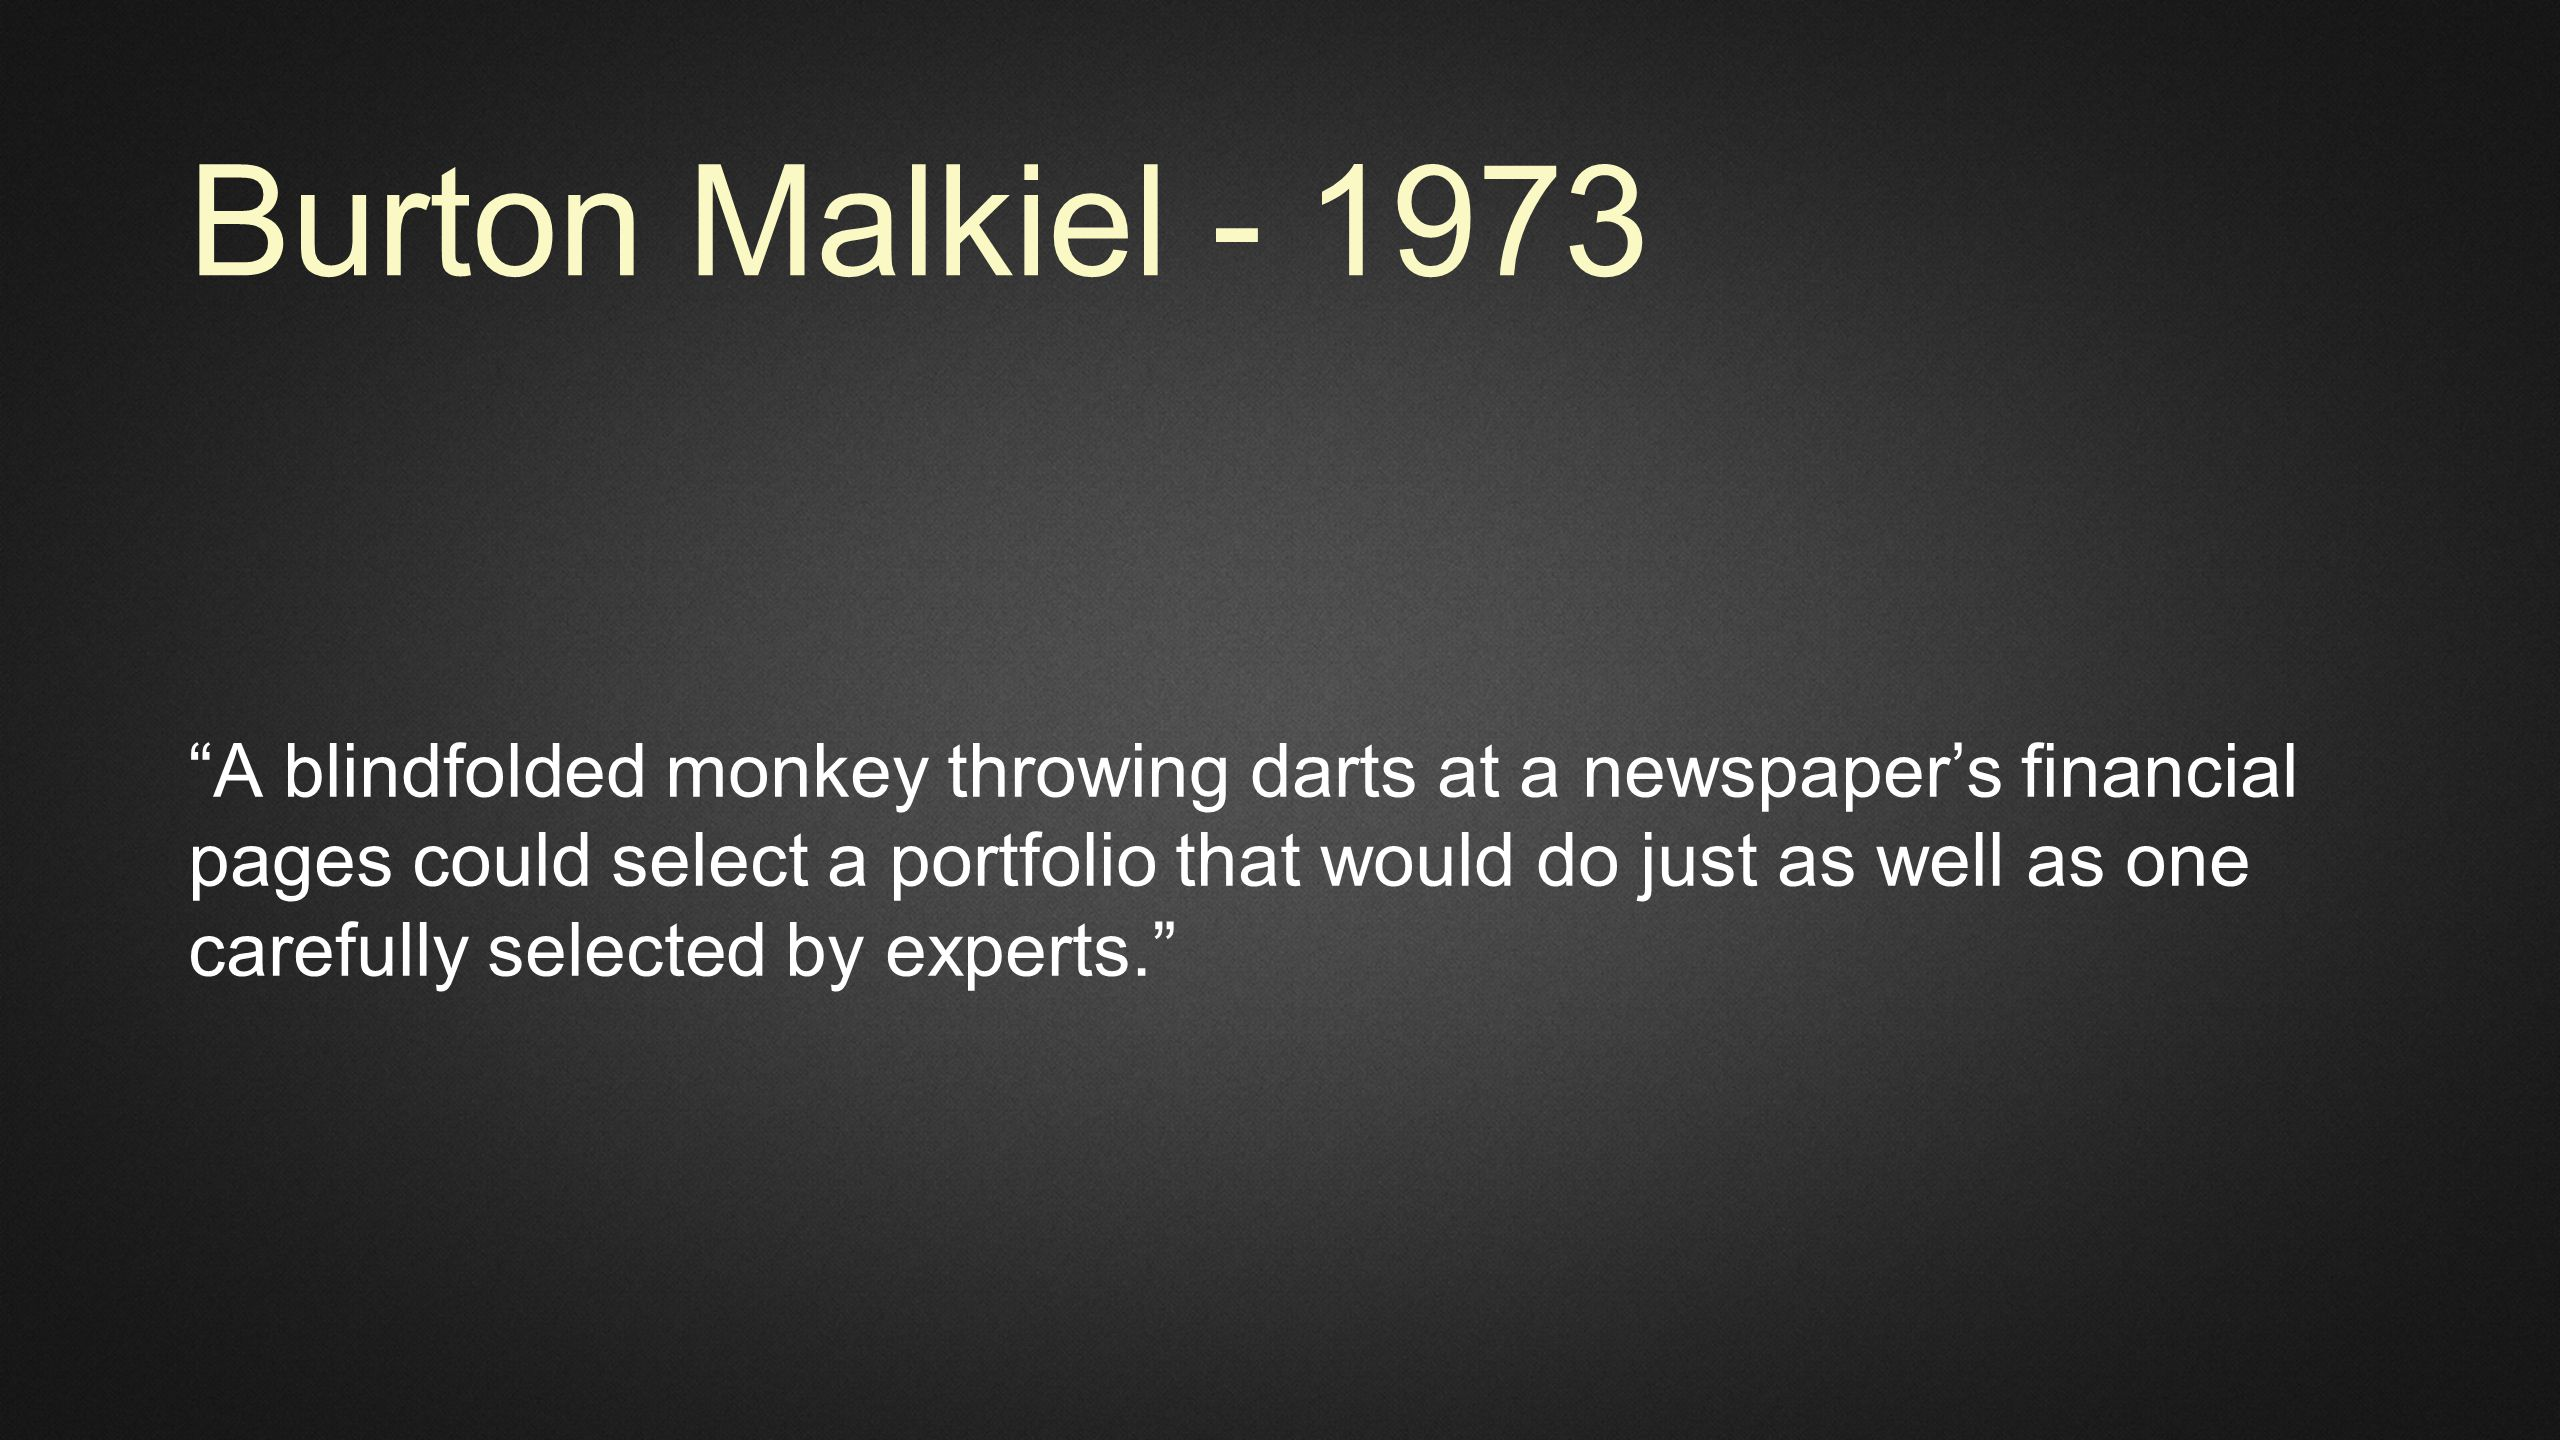 Burton Malkiel - 1973 A blindfolded monkey throwing darts at a newspaper's financial pages could select a portfolio that would do just as well as one carefully selected by experts.